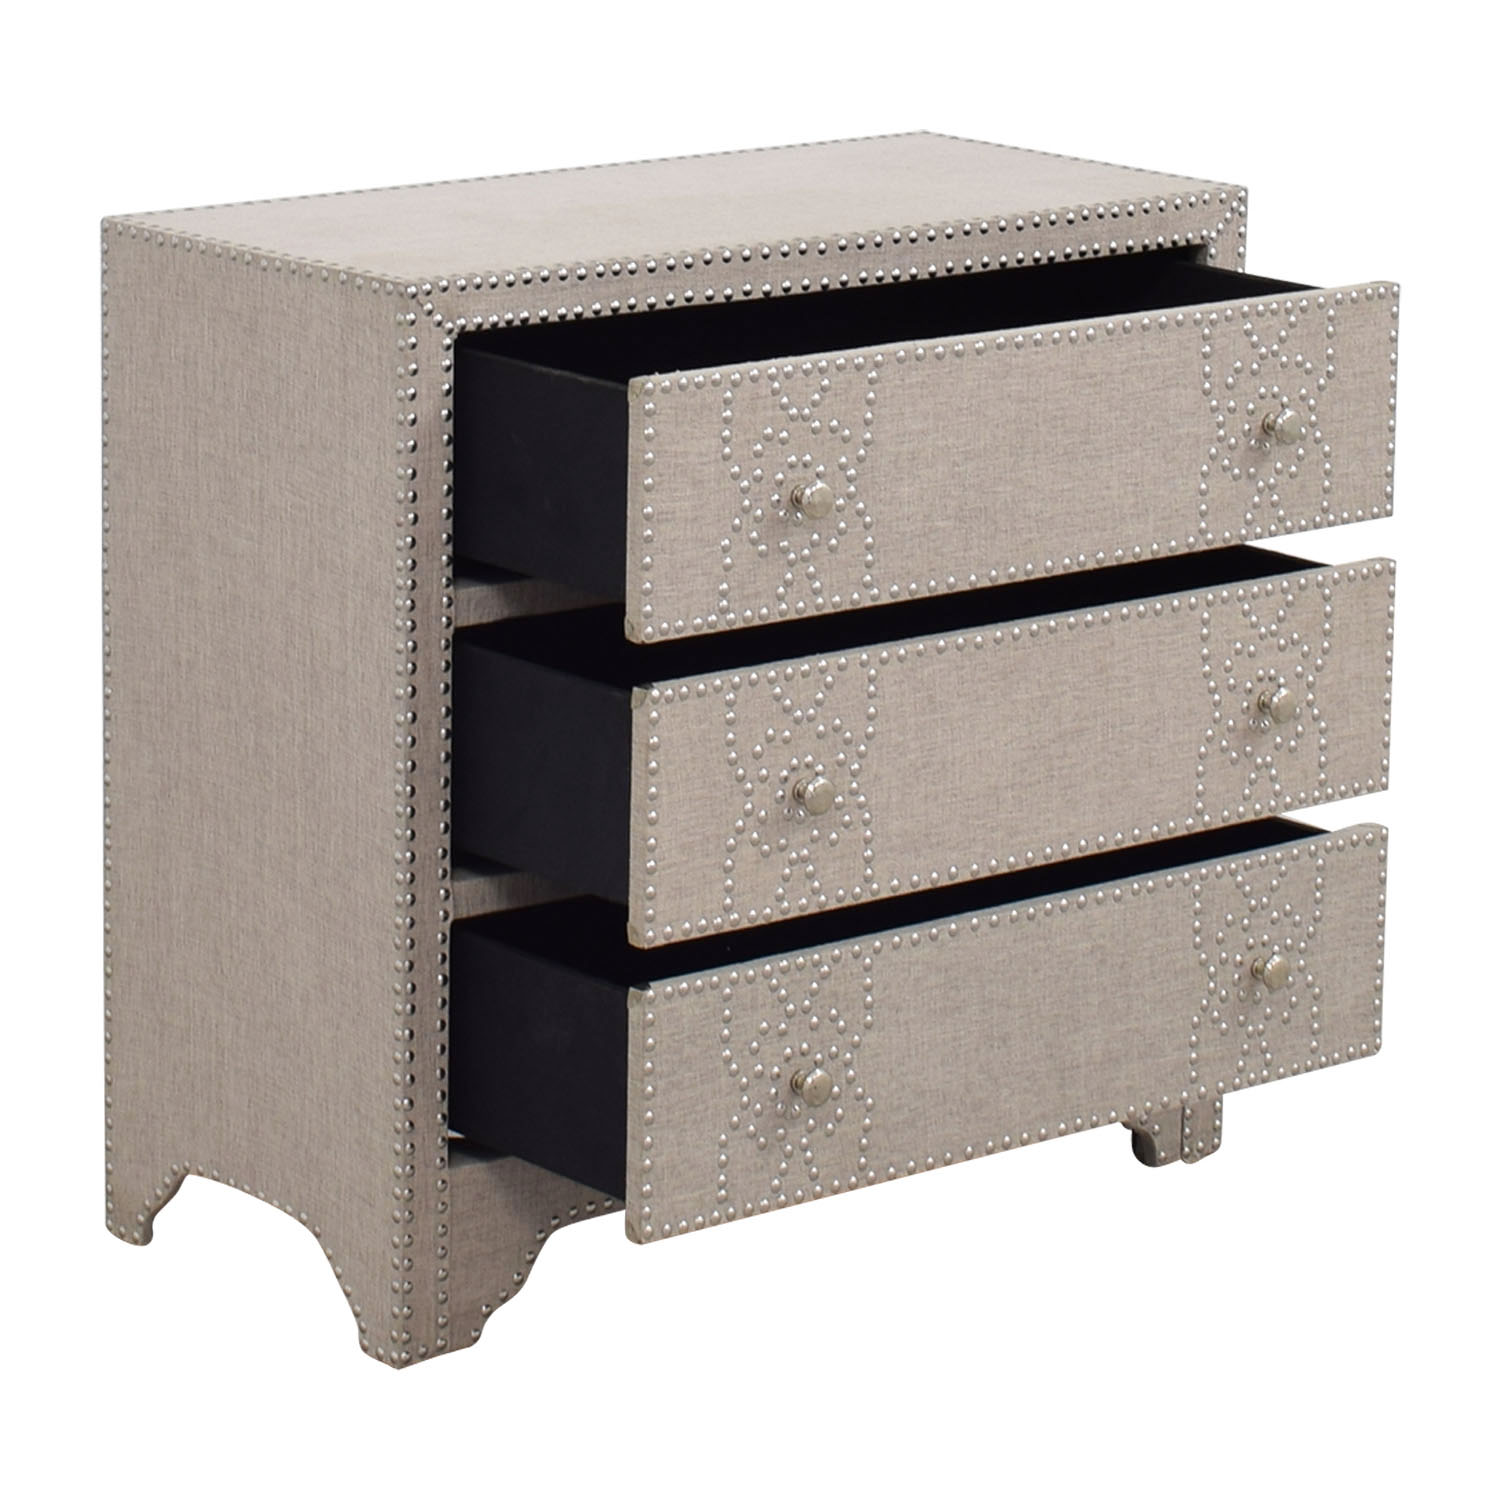 Pier 1 Imports Pier 1 Import Grey Fabric Lexford Chest with Nailheads nyc